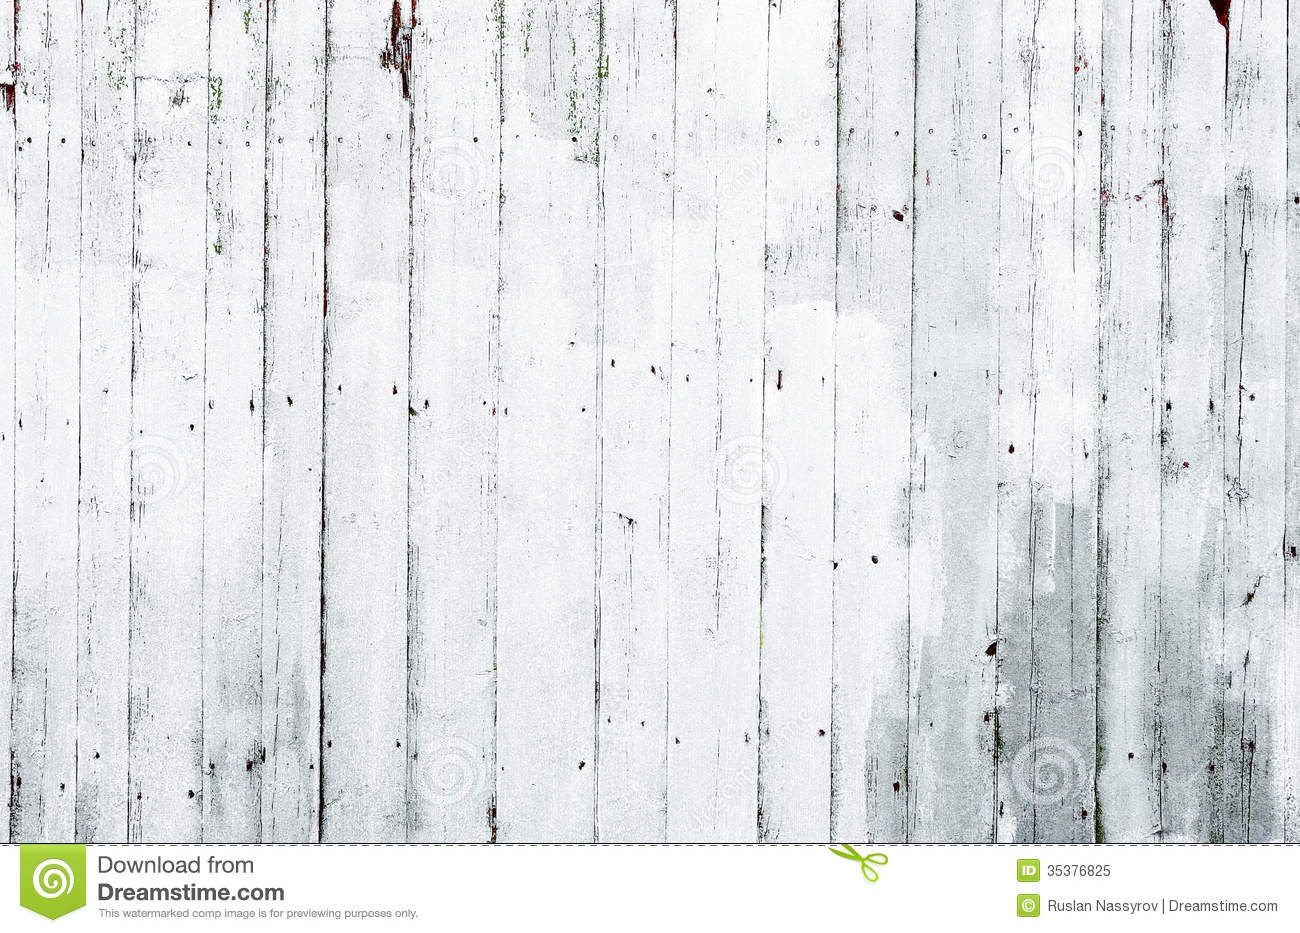 Wooden Texture Royalty Free Stock Photo - Image: 35376825